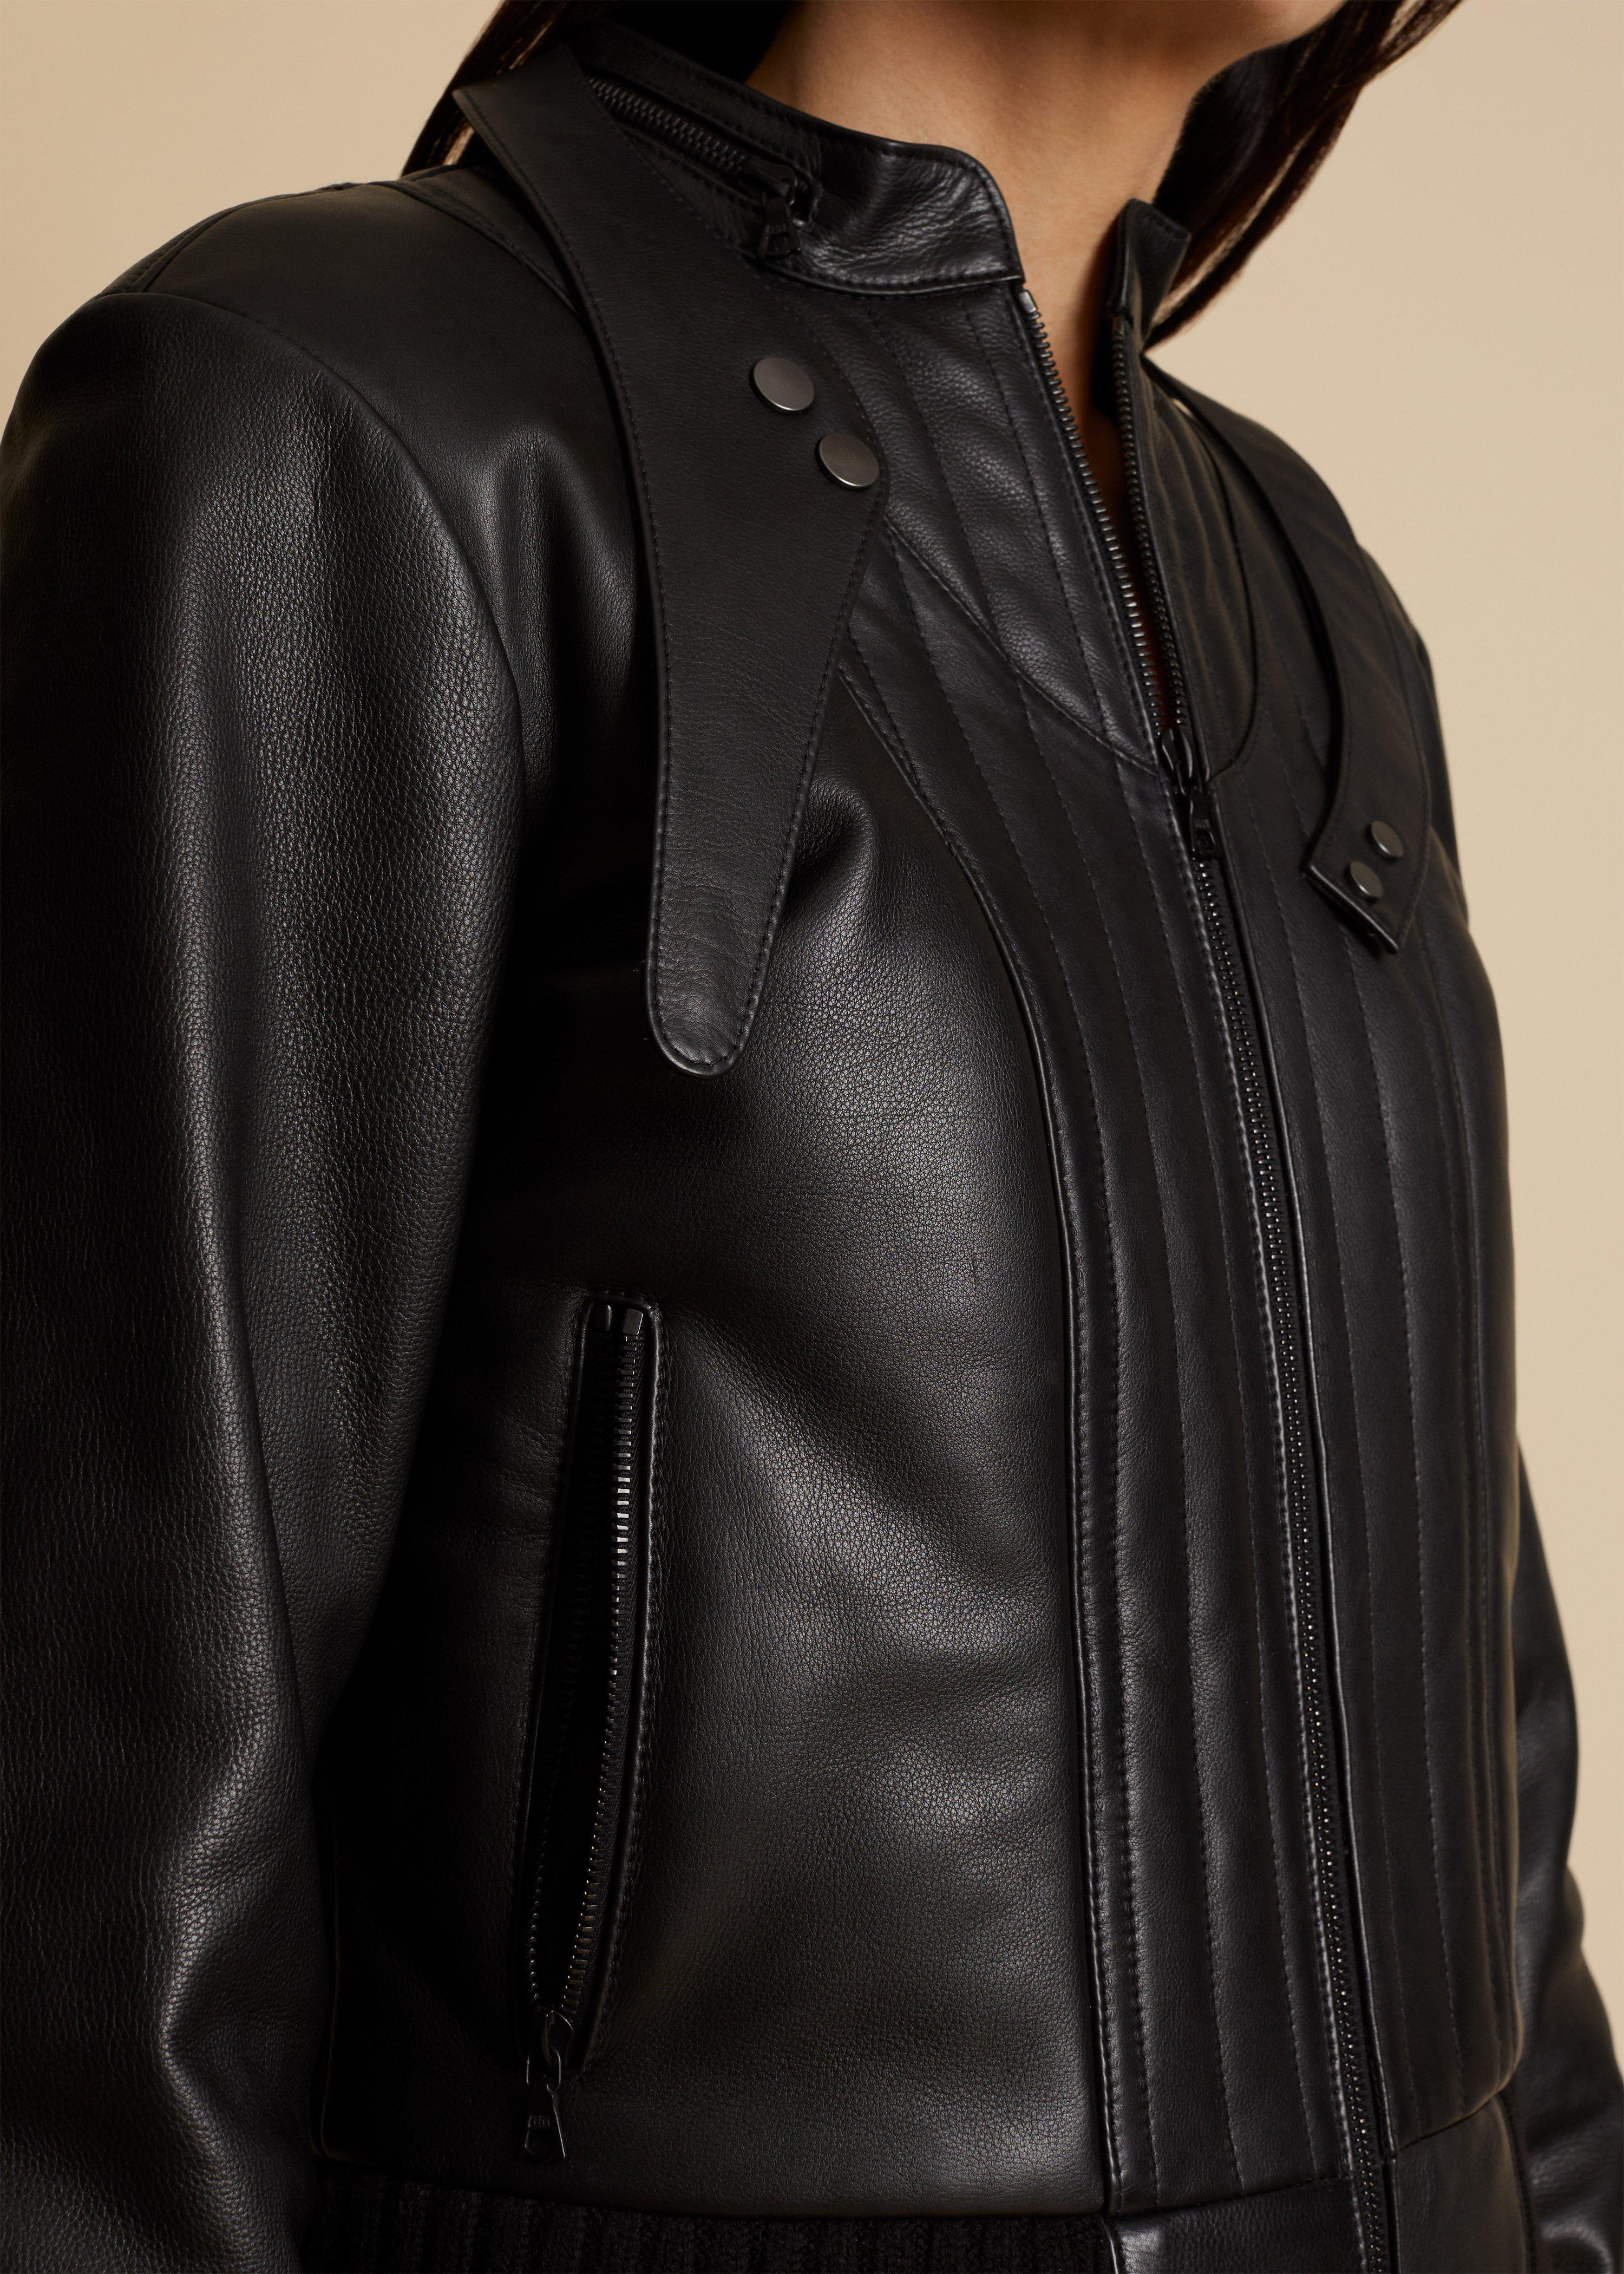 The Nicolette Jacket in Black Leather 7